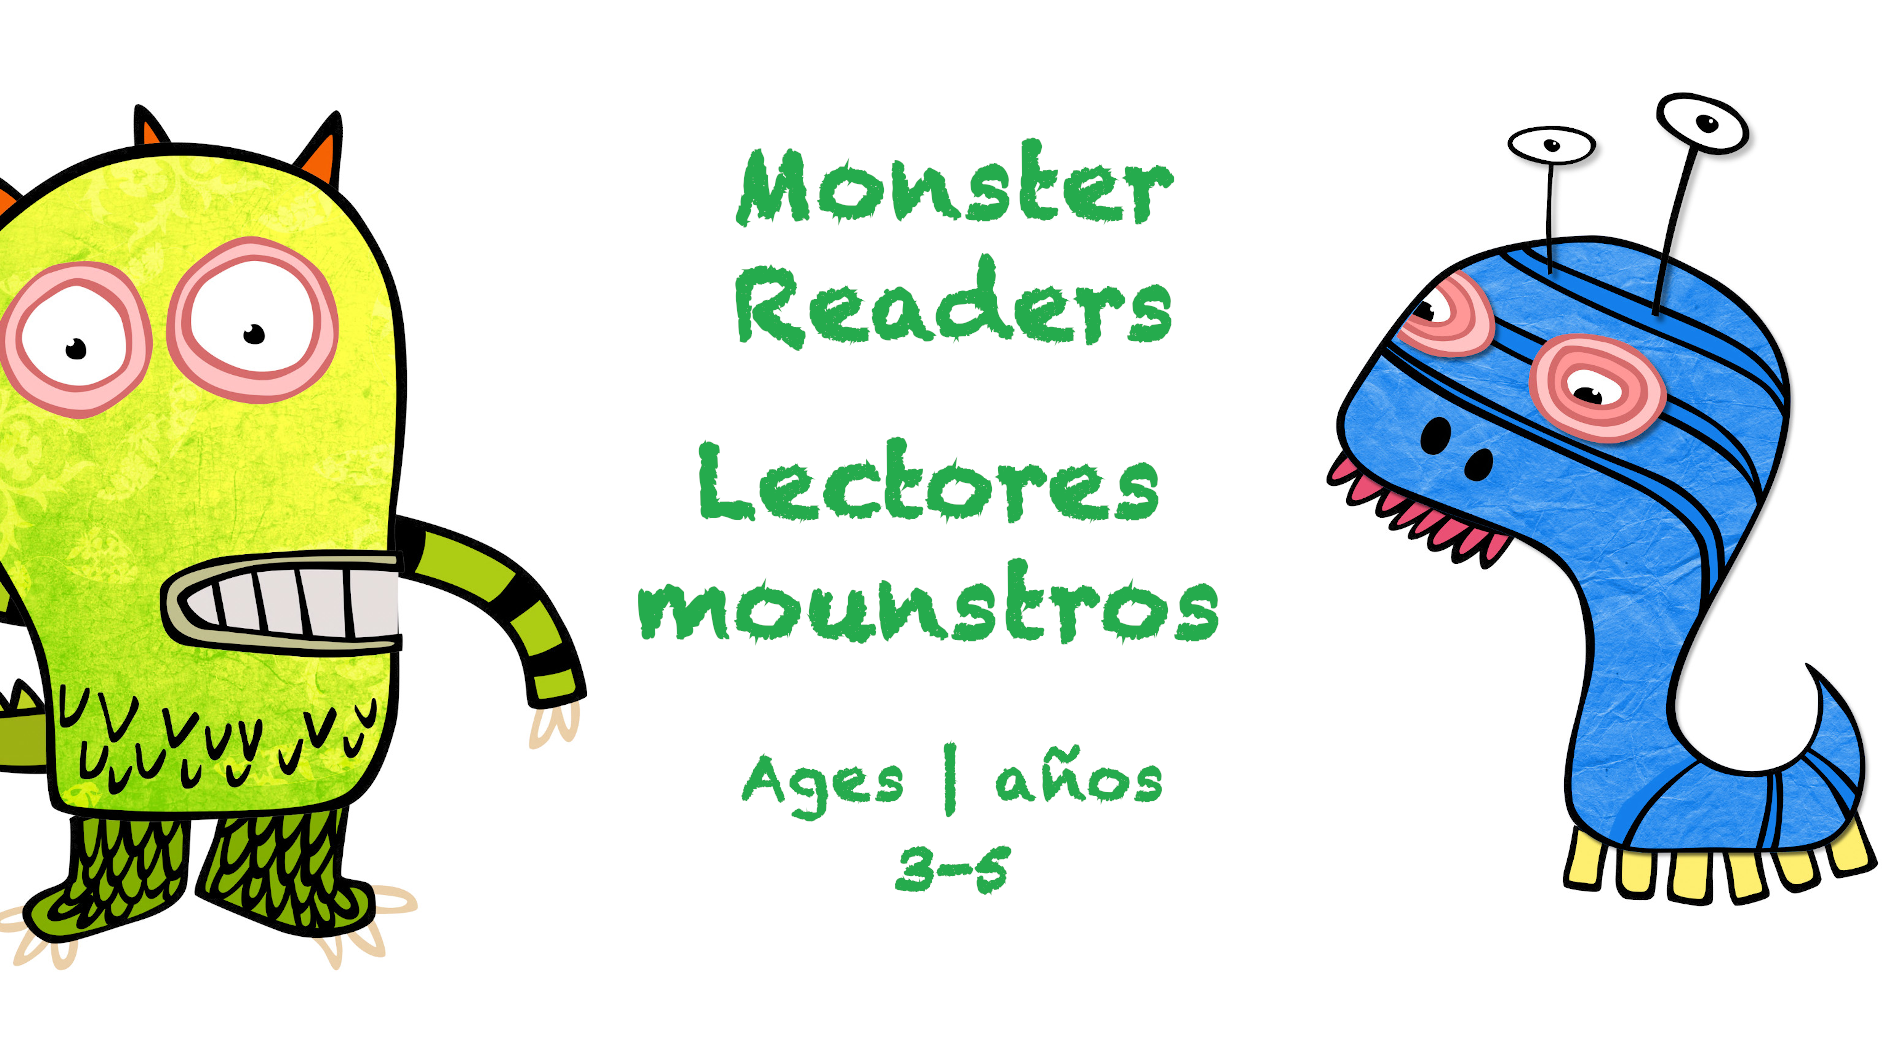 Week 28 Monster Reader Card Ages 3-5